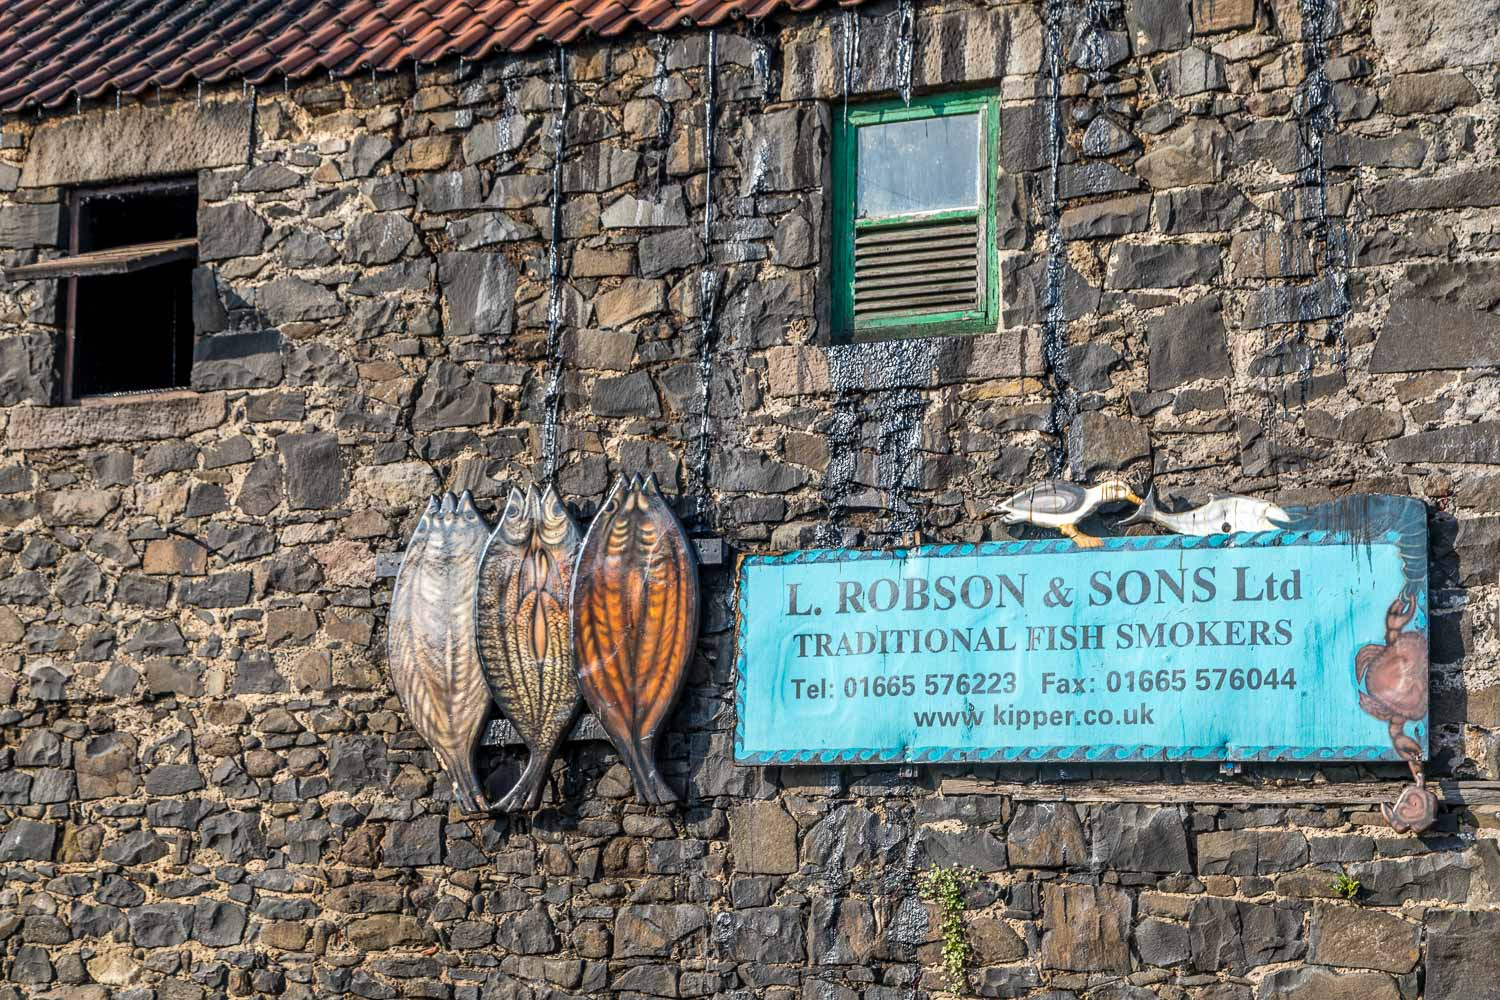 L Robson & Sons Ltd, producers of the legendary Craster Kippers